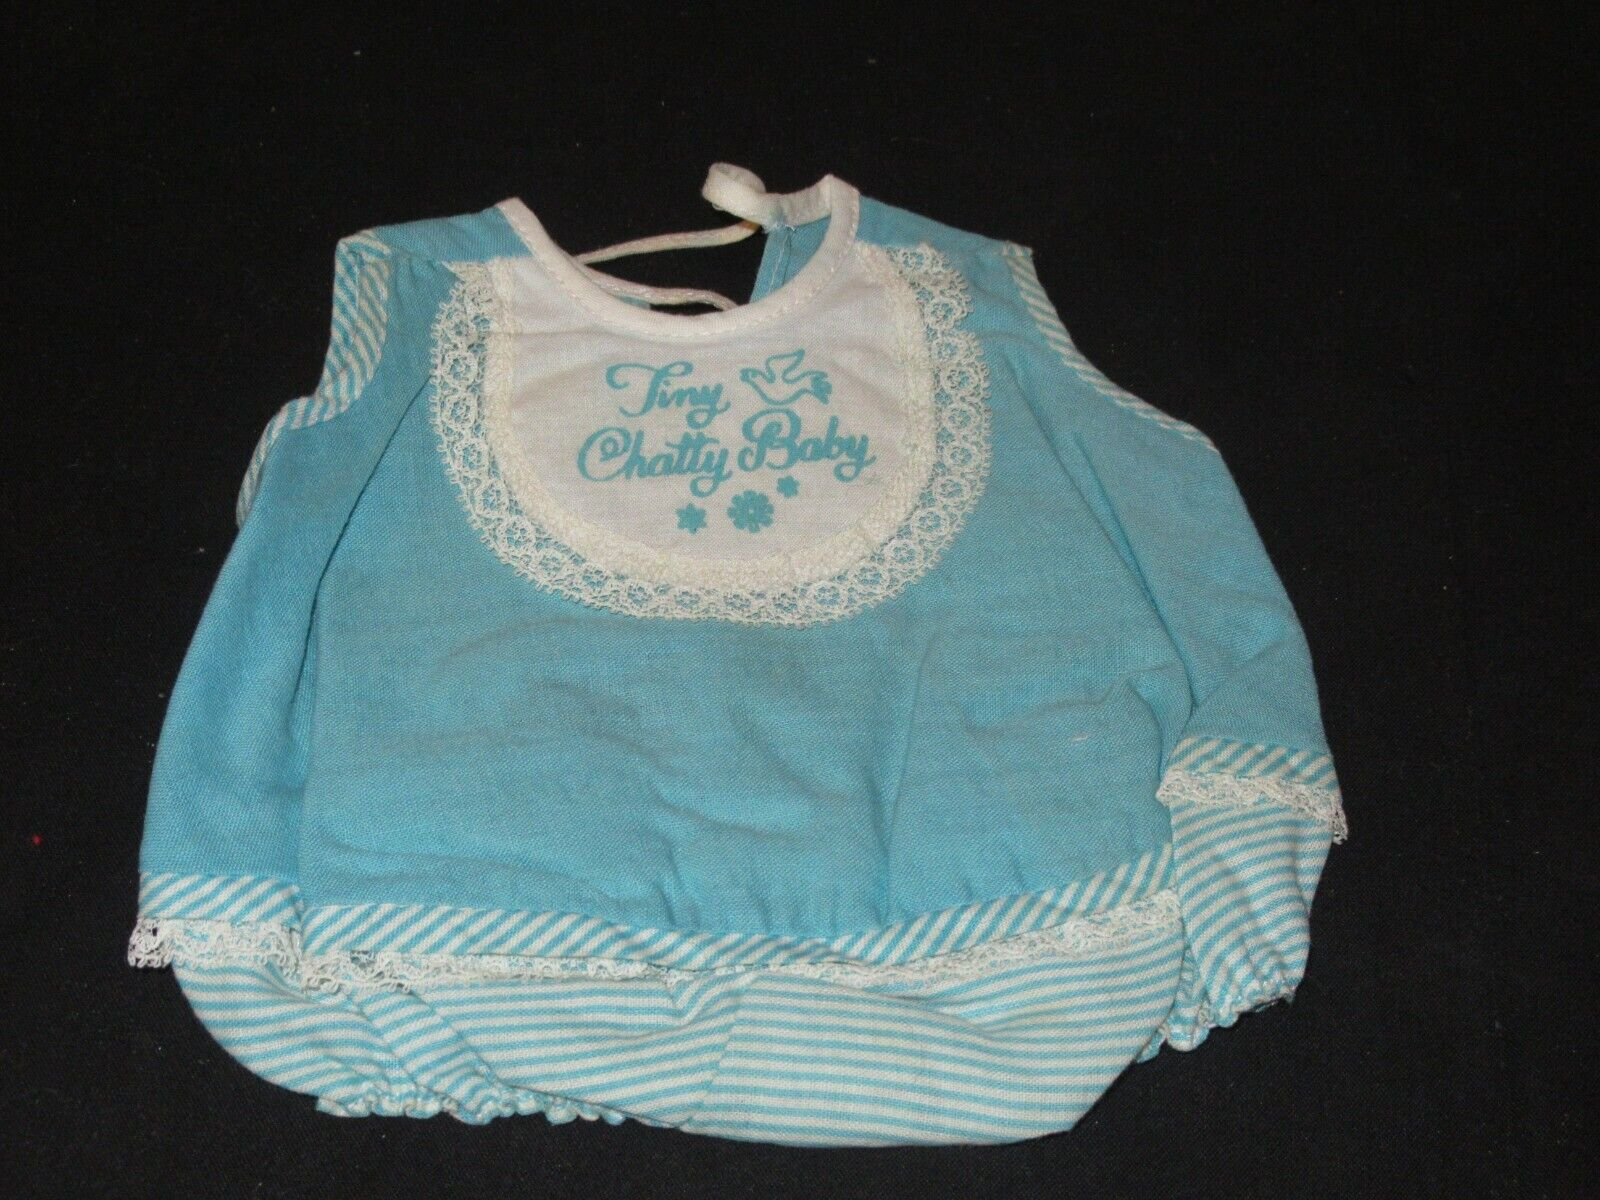 Vintage Tiny Chatty Baby Doll Swimsuit Outfit MB16  - $14.99